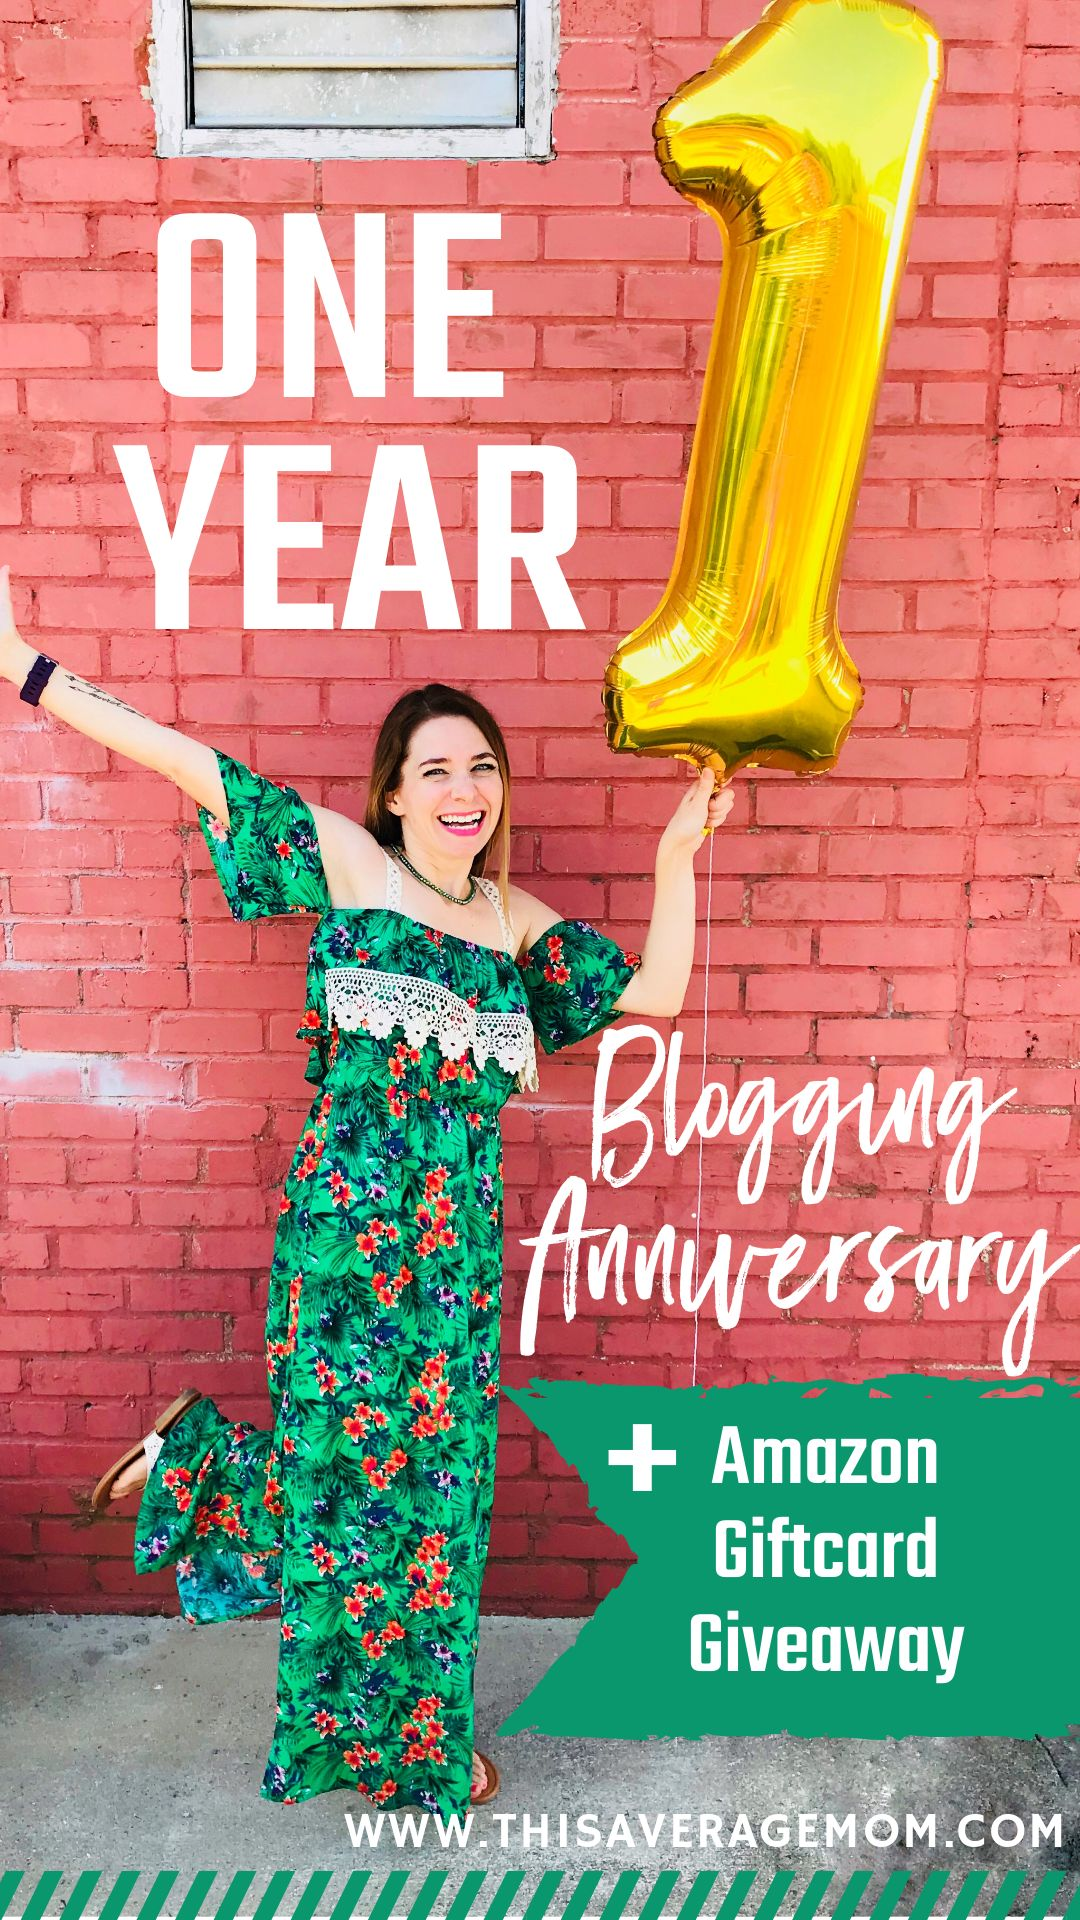 Want to win a $75 Amazon gift card? It's my one year blog anniversary and I'm giving away $75! Head to the blog to enter!